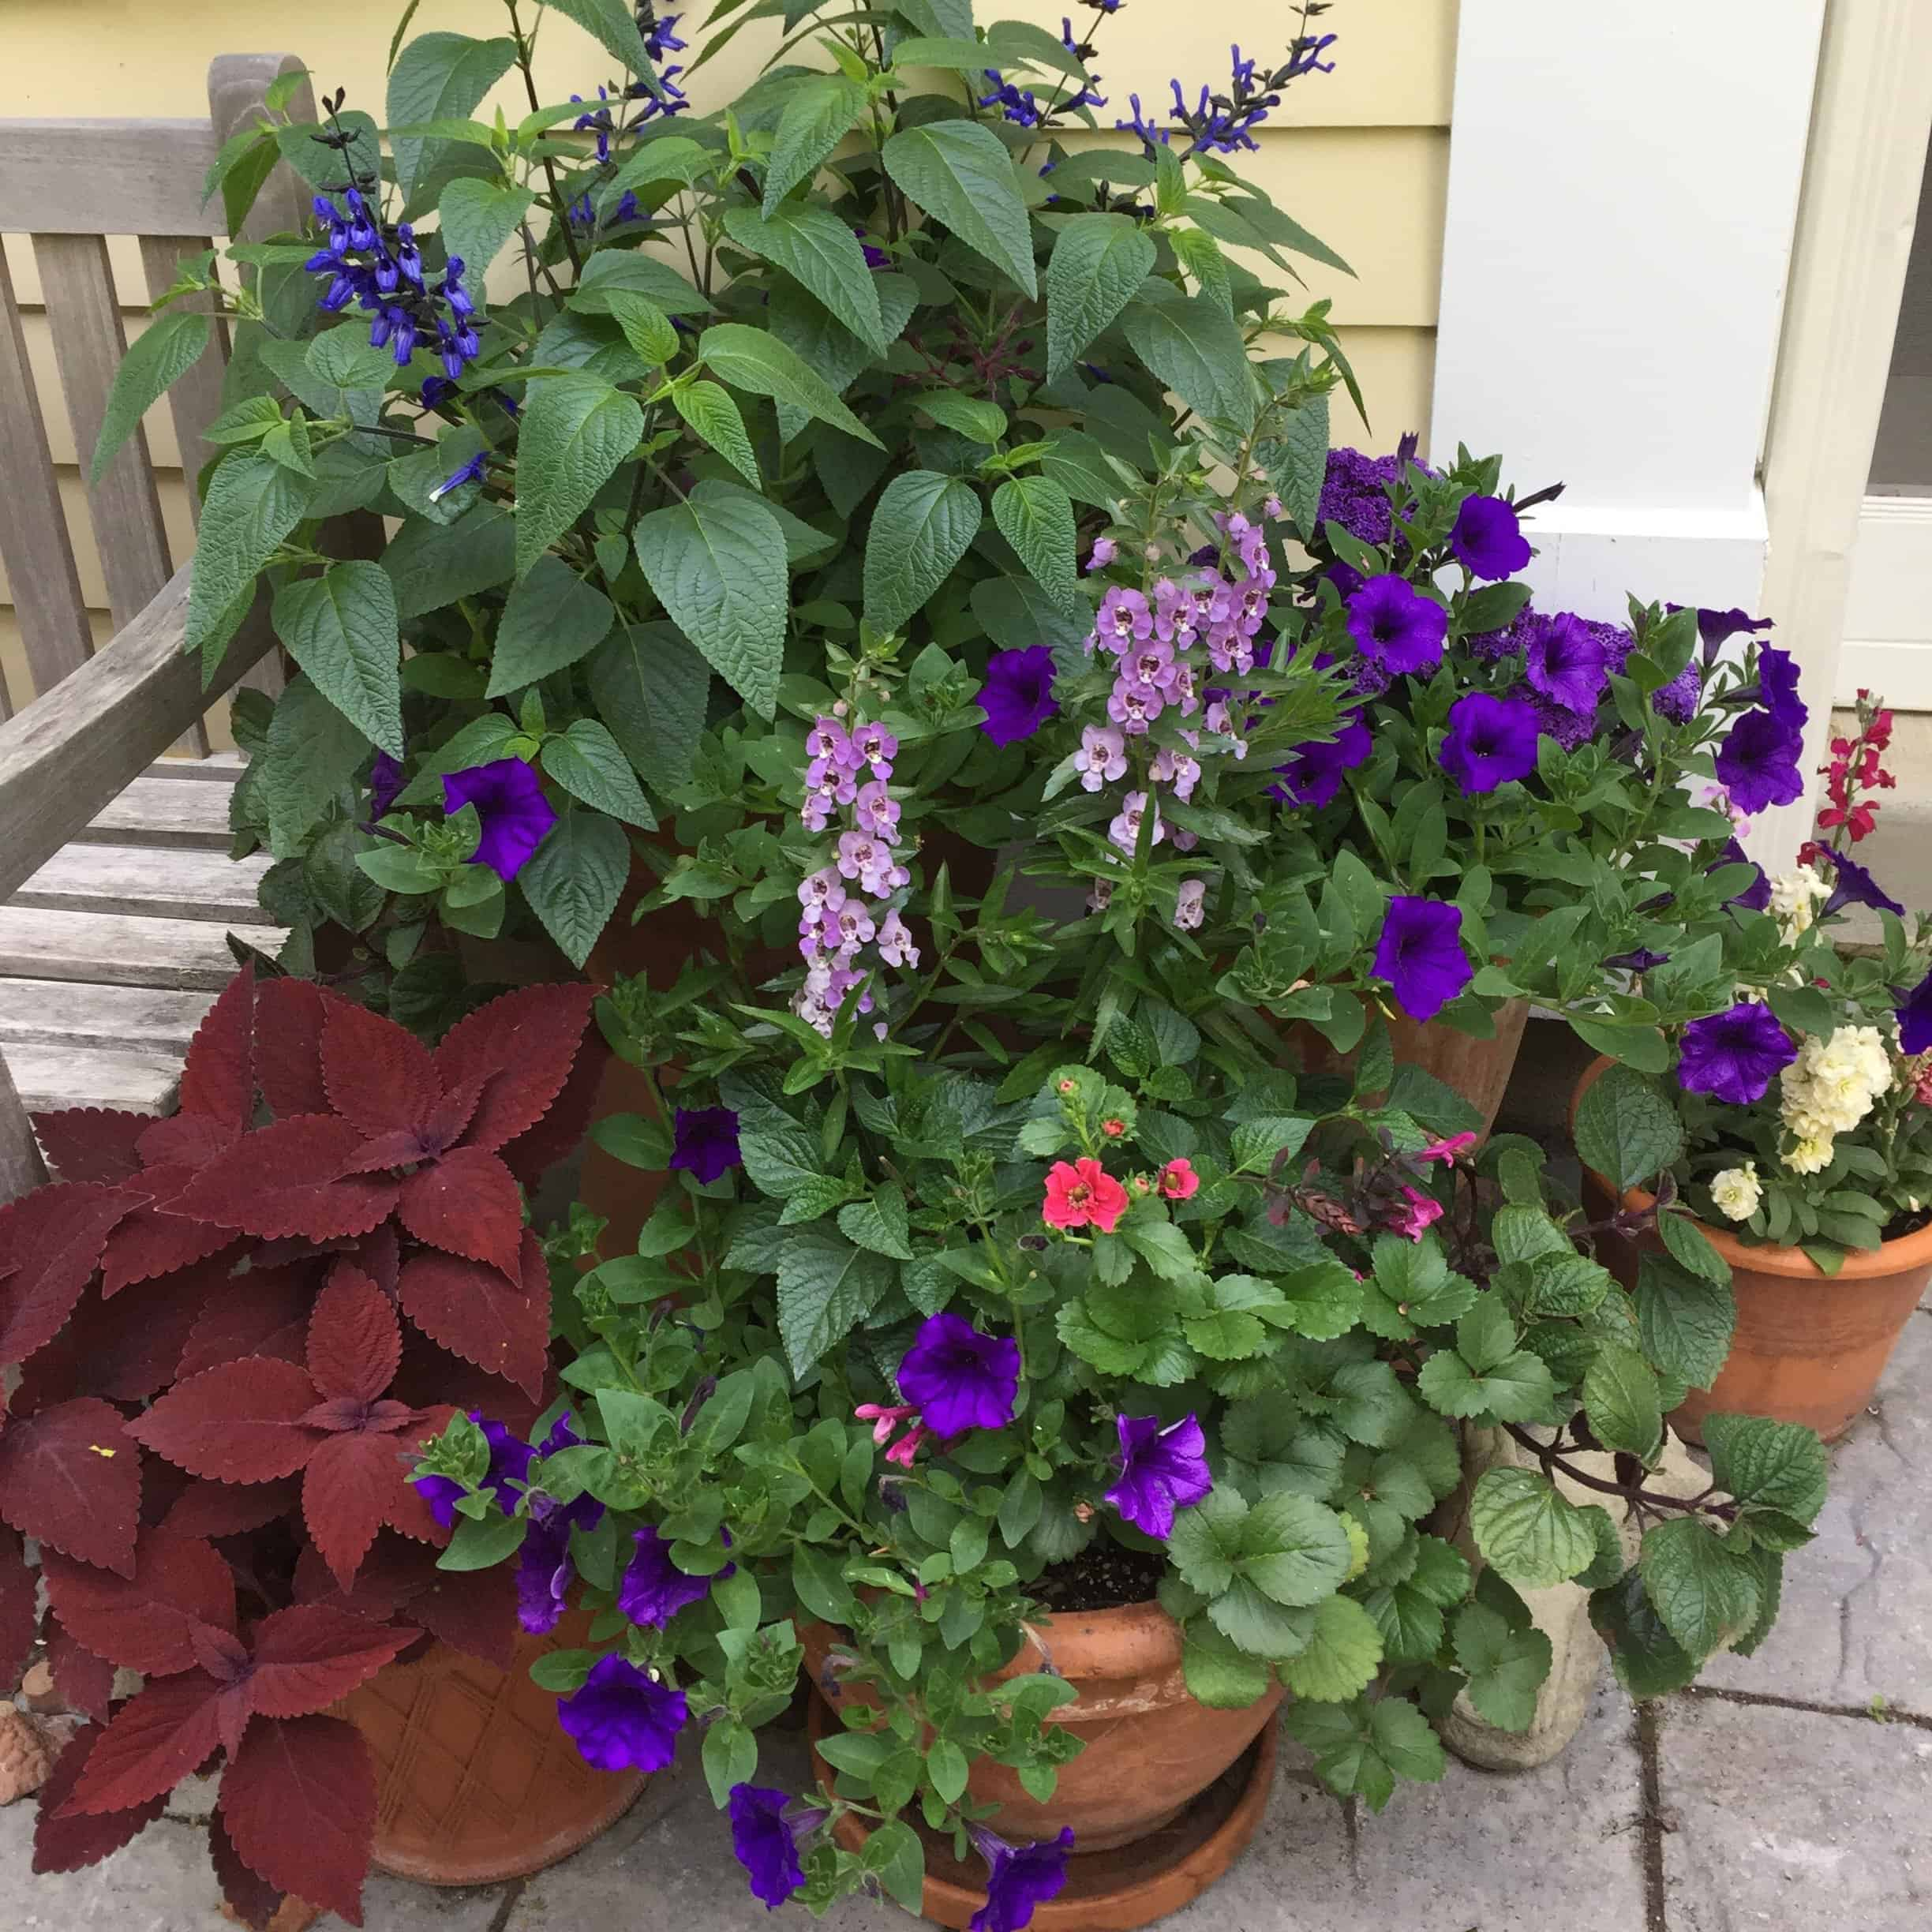 Winter is a good time to look at photos from last year to see what plants worked well in containers.